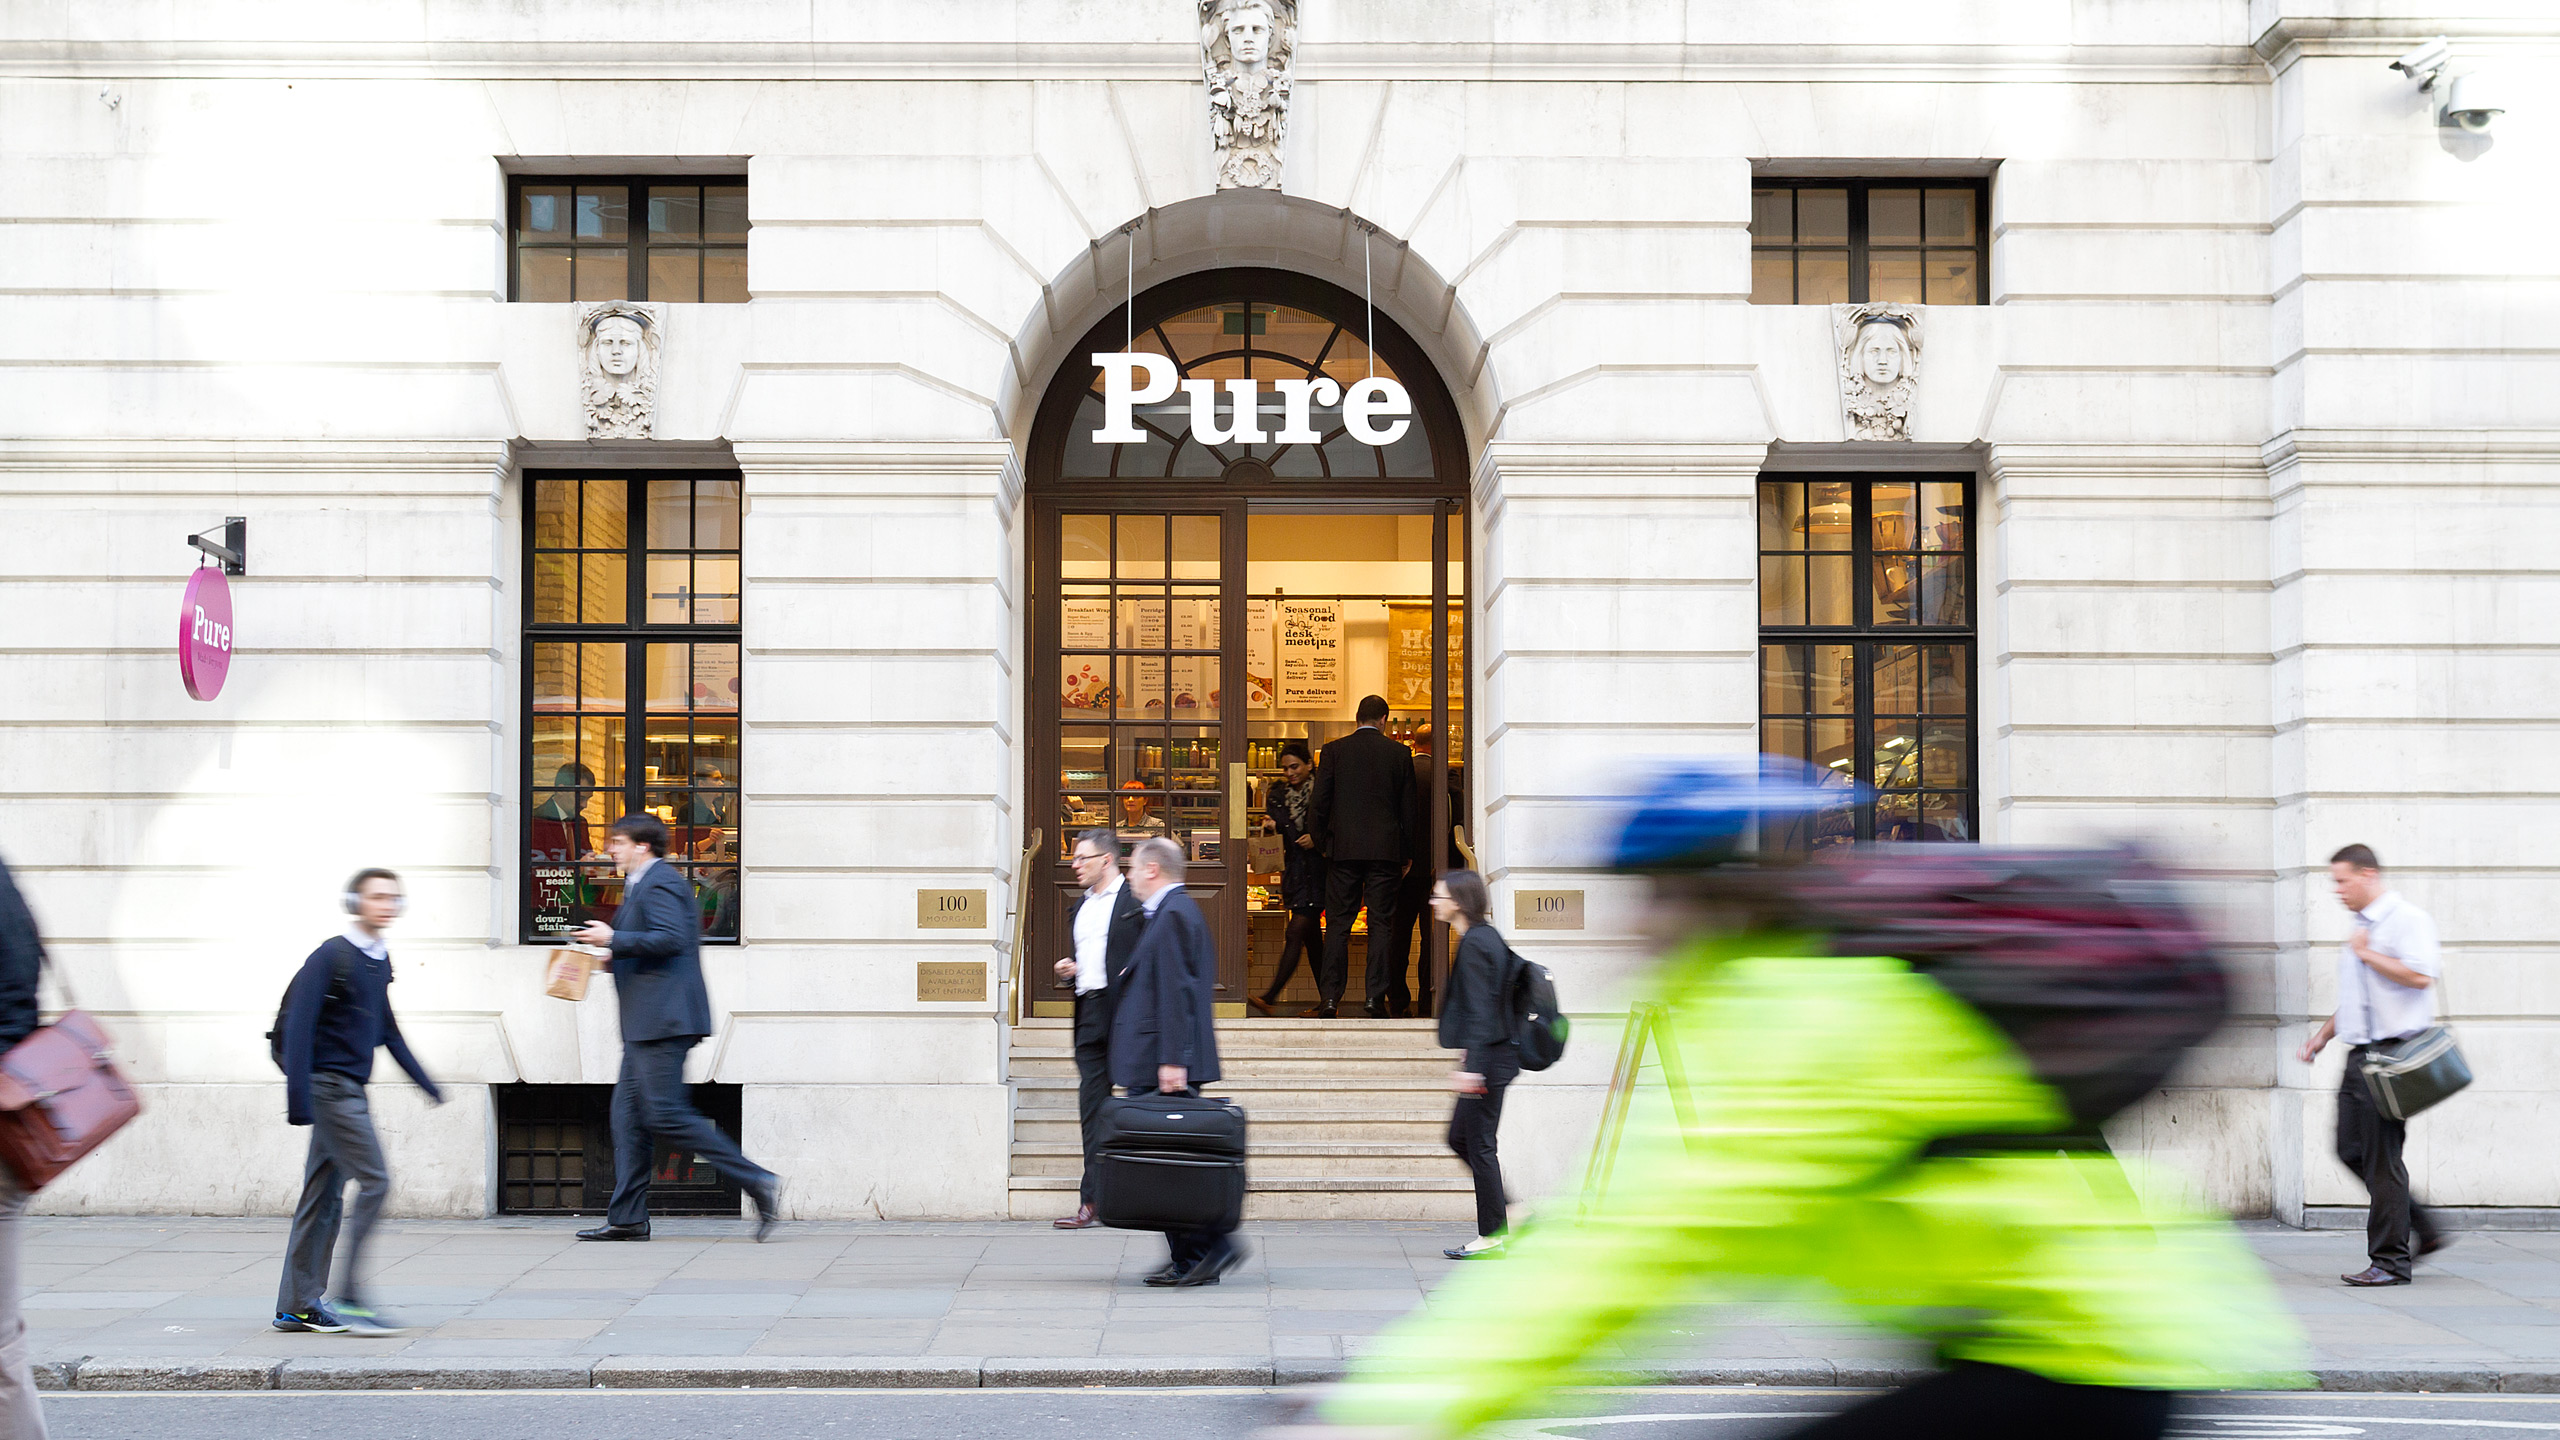 Pure made-for-you design, print and installation of interior retail graphics and signage London. point of sale graphics